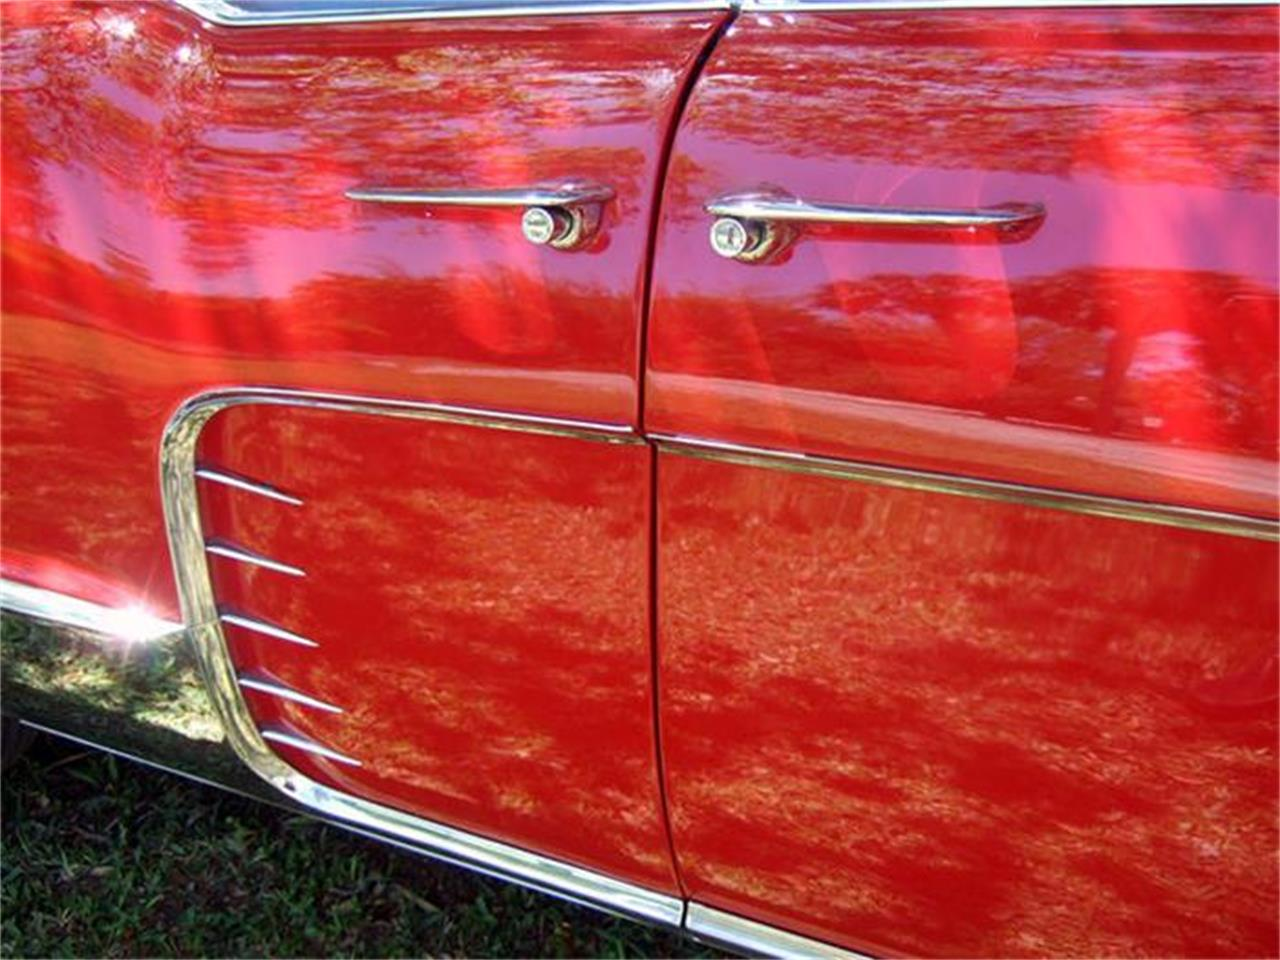 Large Picture of Classic 1958 Cadillac Eldorado Brougham located in Sarasota Florida - $169,900.00 Offered by Vintage Motors Sarasota - B3EW